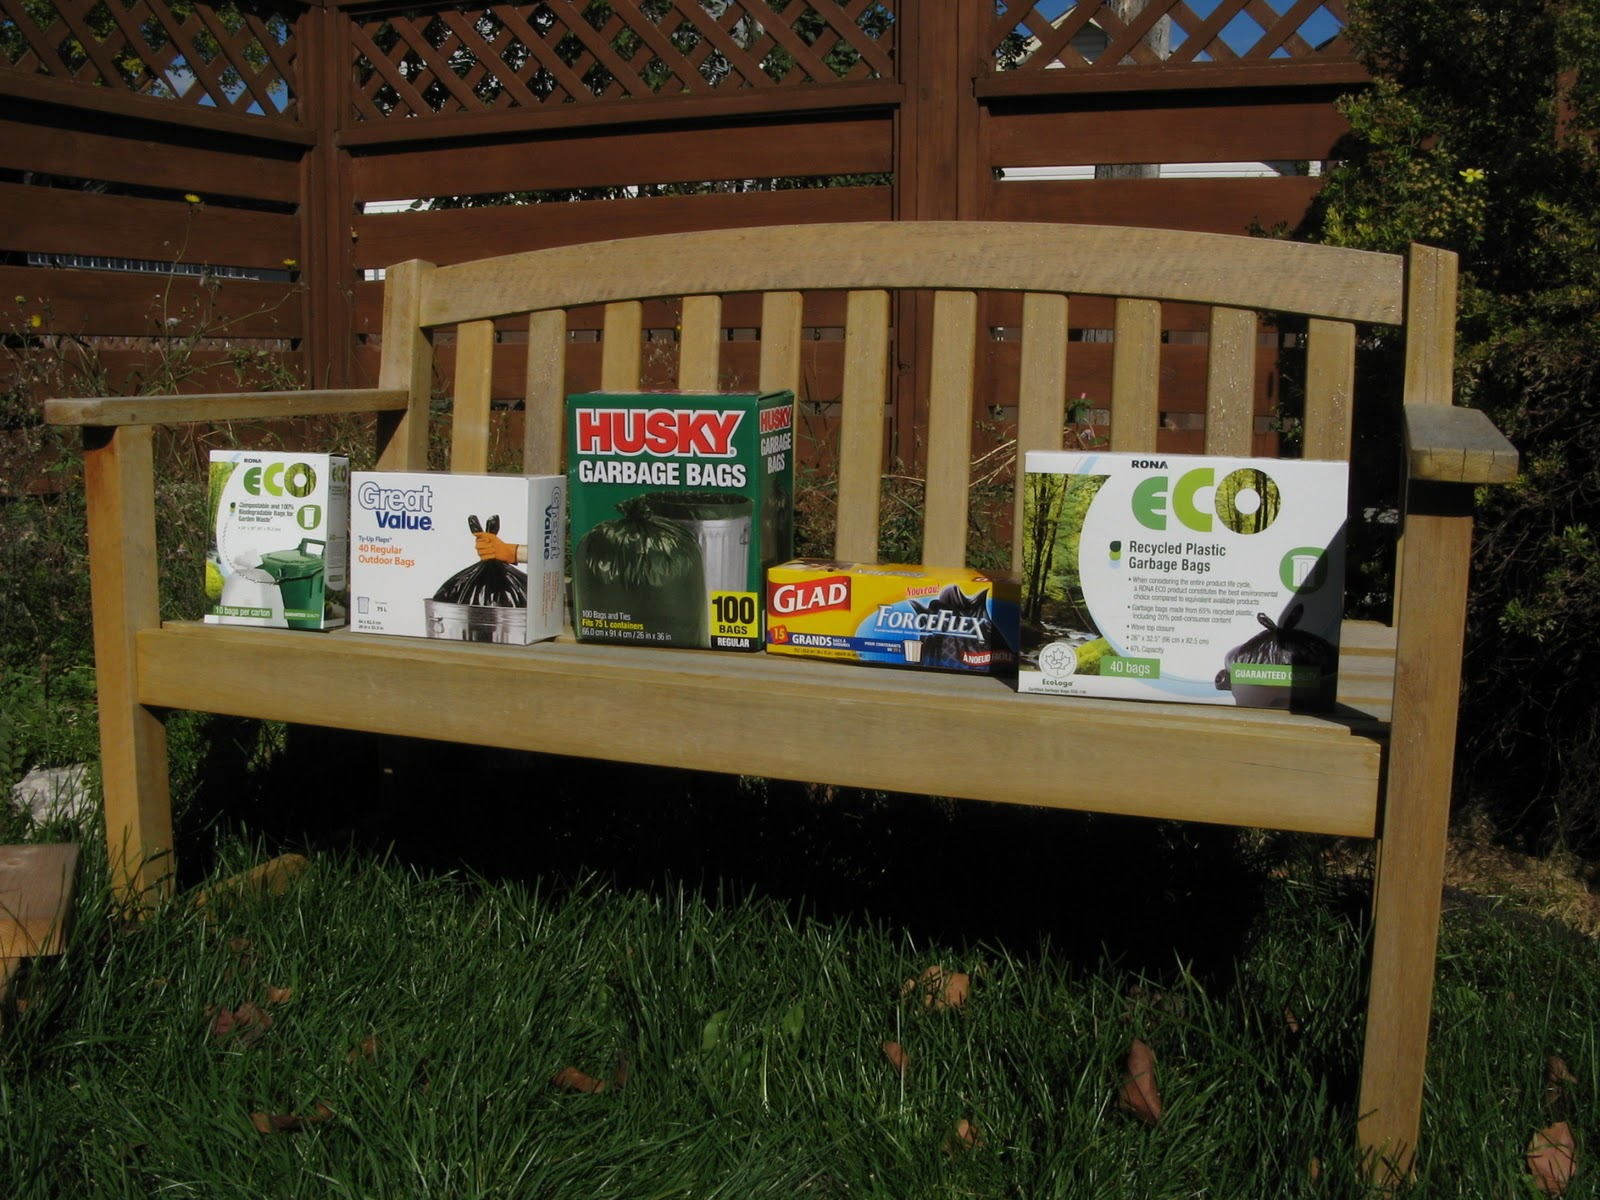 Landscaping Ties Rona : The rona eco compostable and biodegradable bags for garden waste